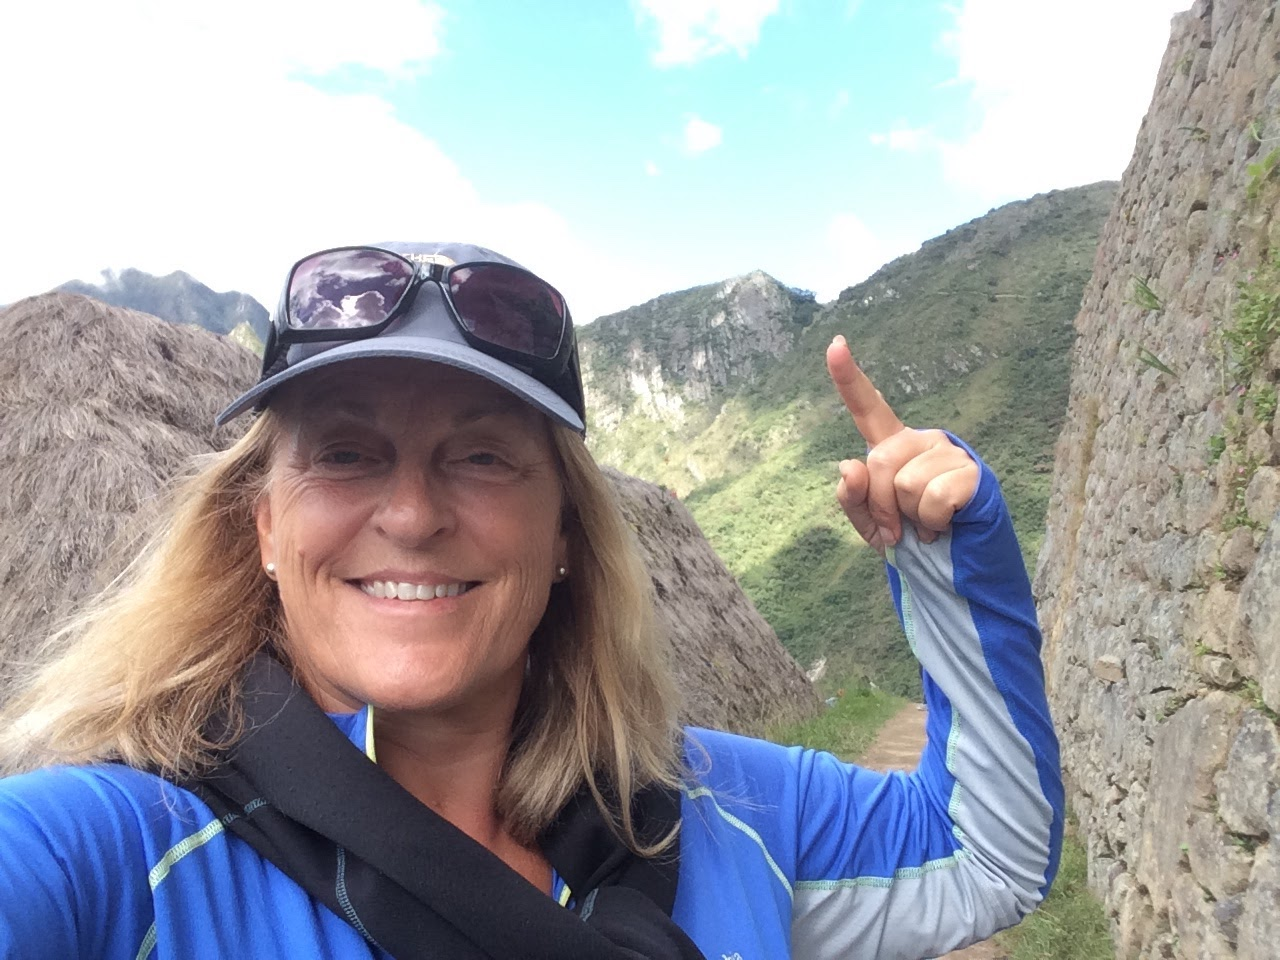 Janet Rouss on Remote Year Ikigai Traveling as a Digital Nomad for a Year